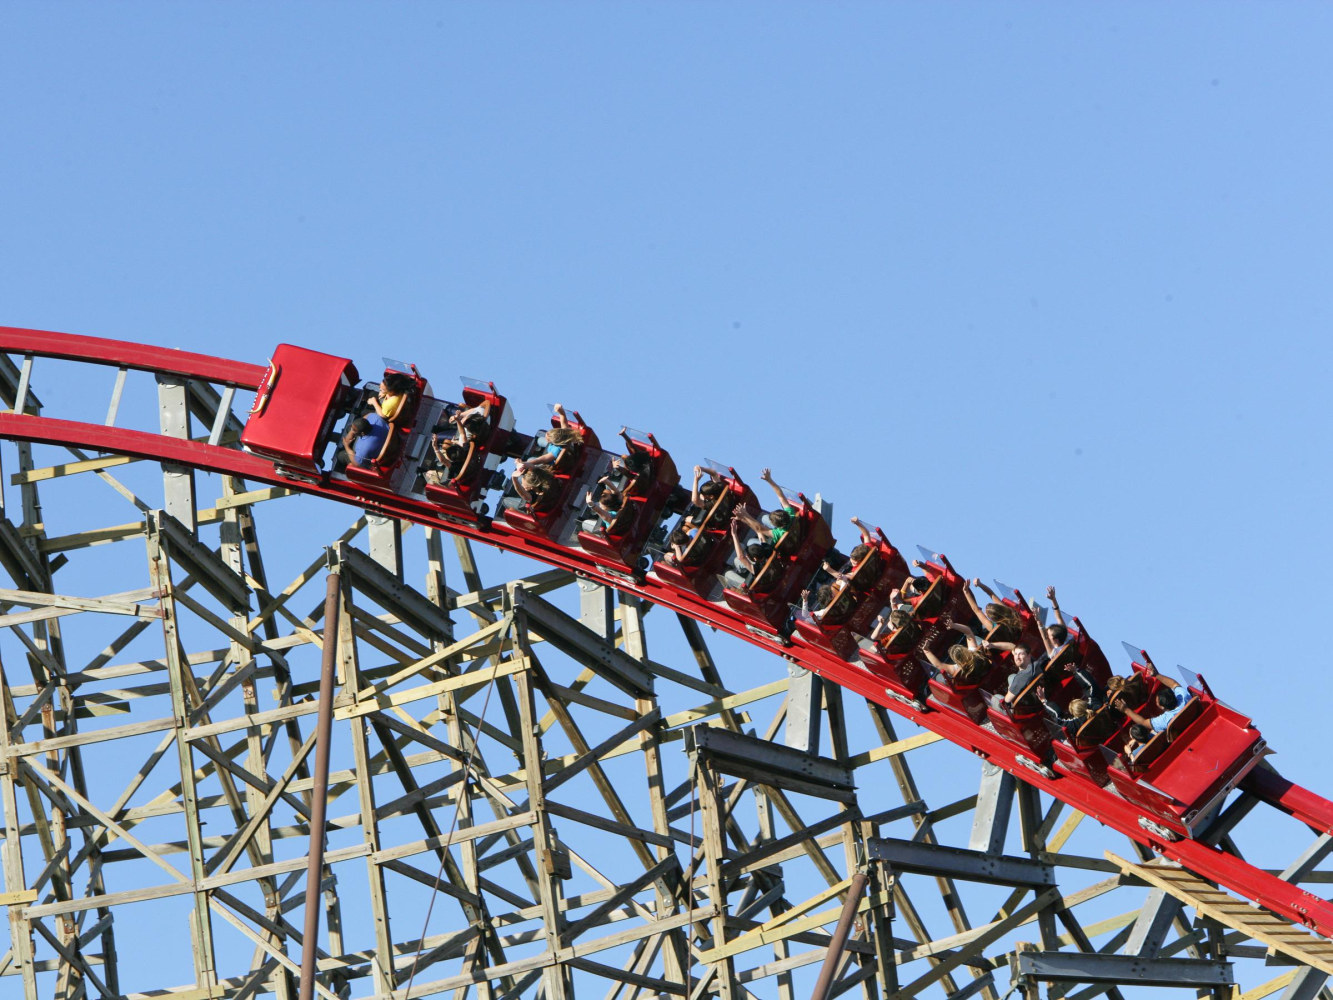 Six Flags – News Stories About Six Flags - Page 1 | Newser